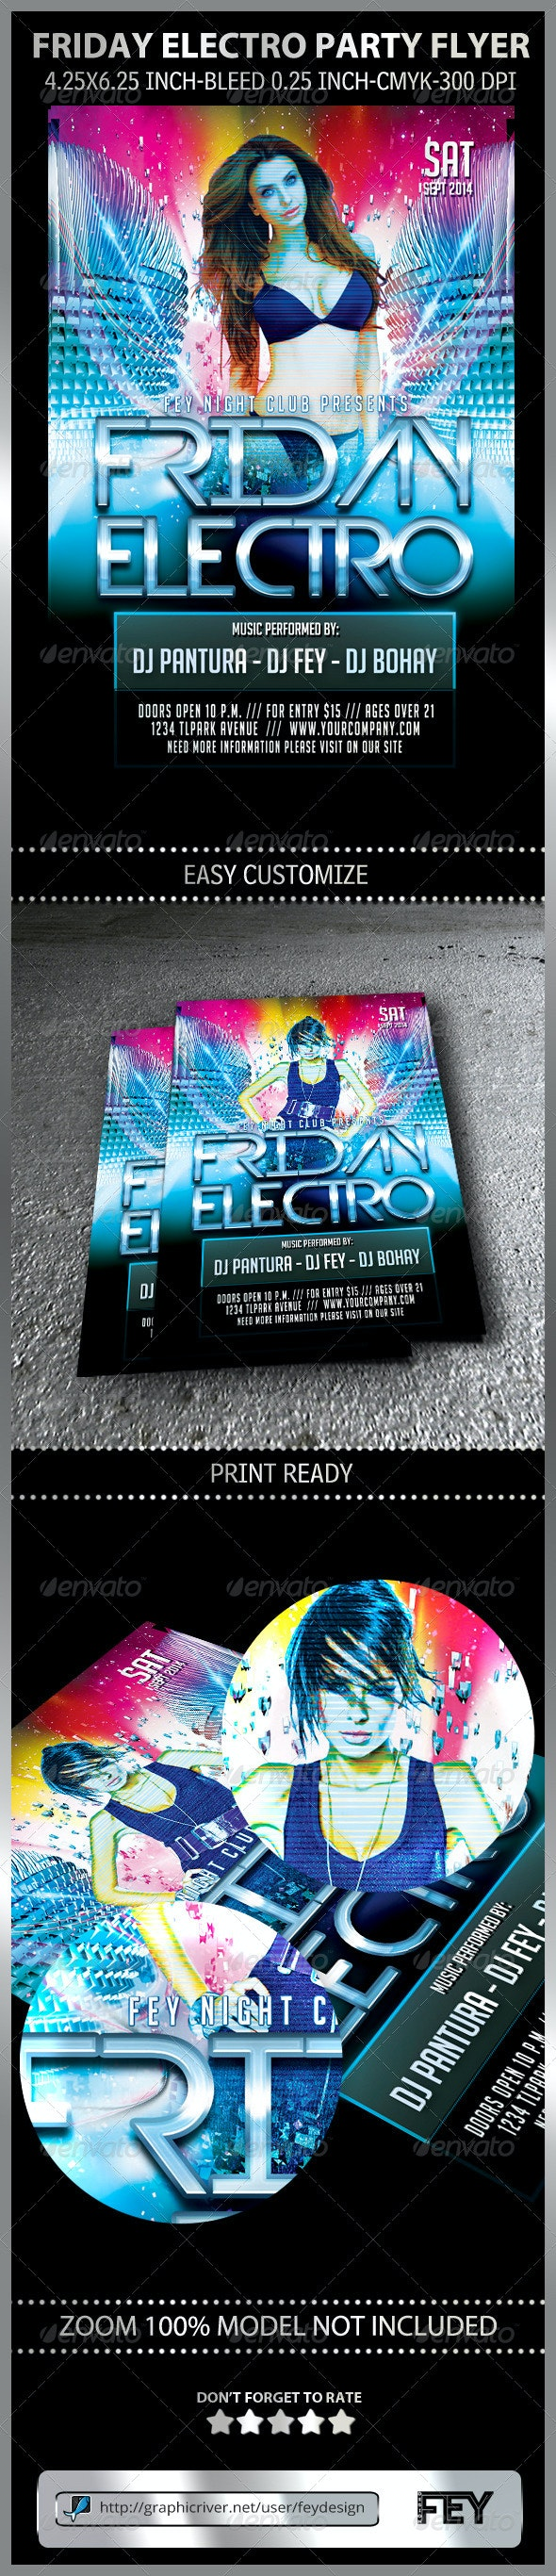 Friday Electro Party Flyer - Clubs & Parties Events